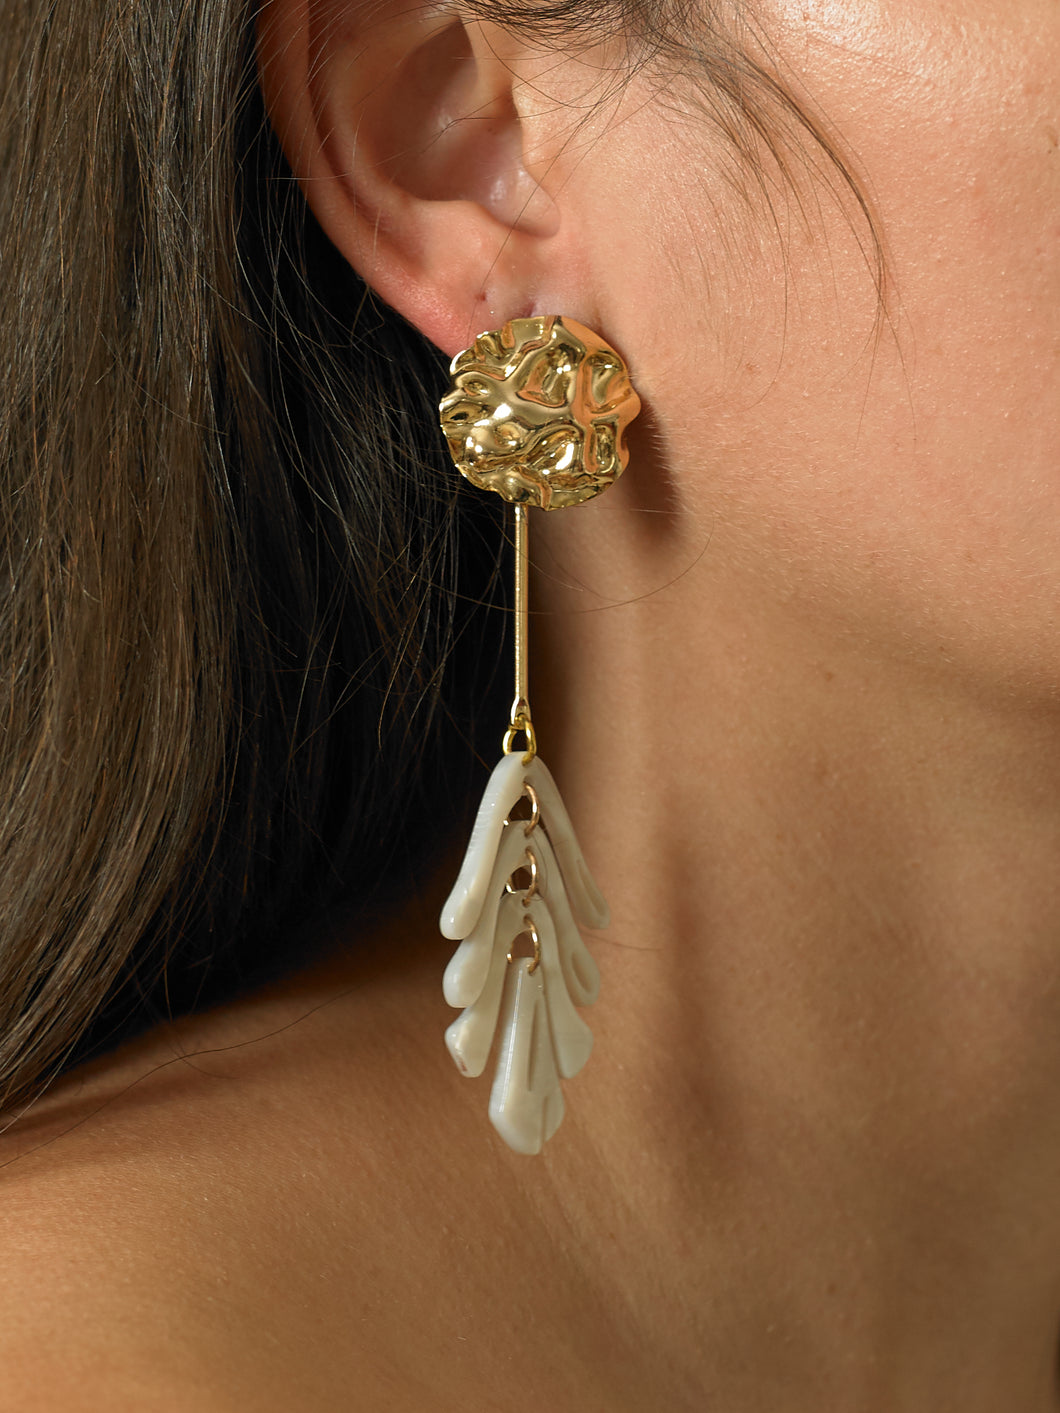 Isora Earrings - Gold/Perla